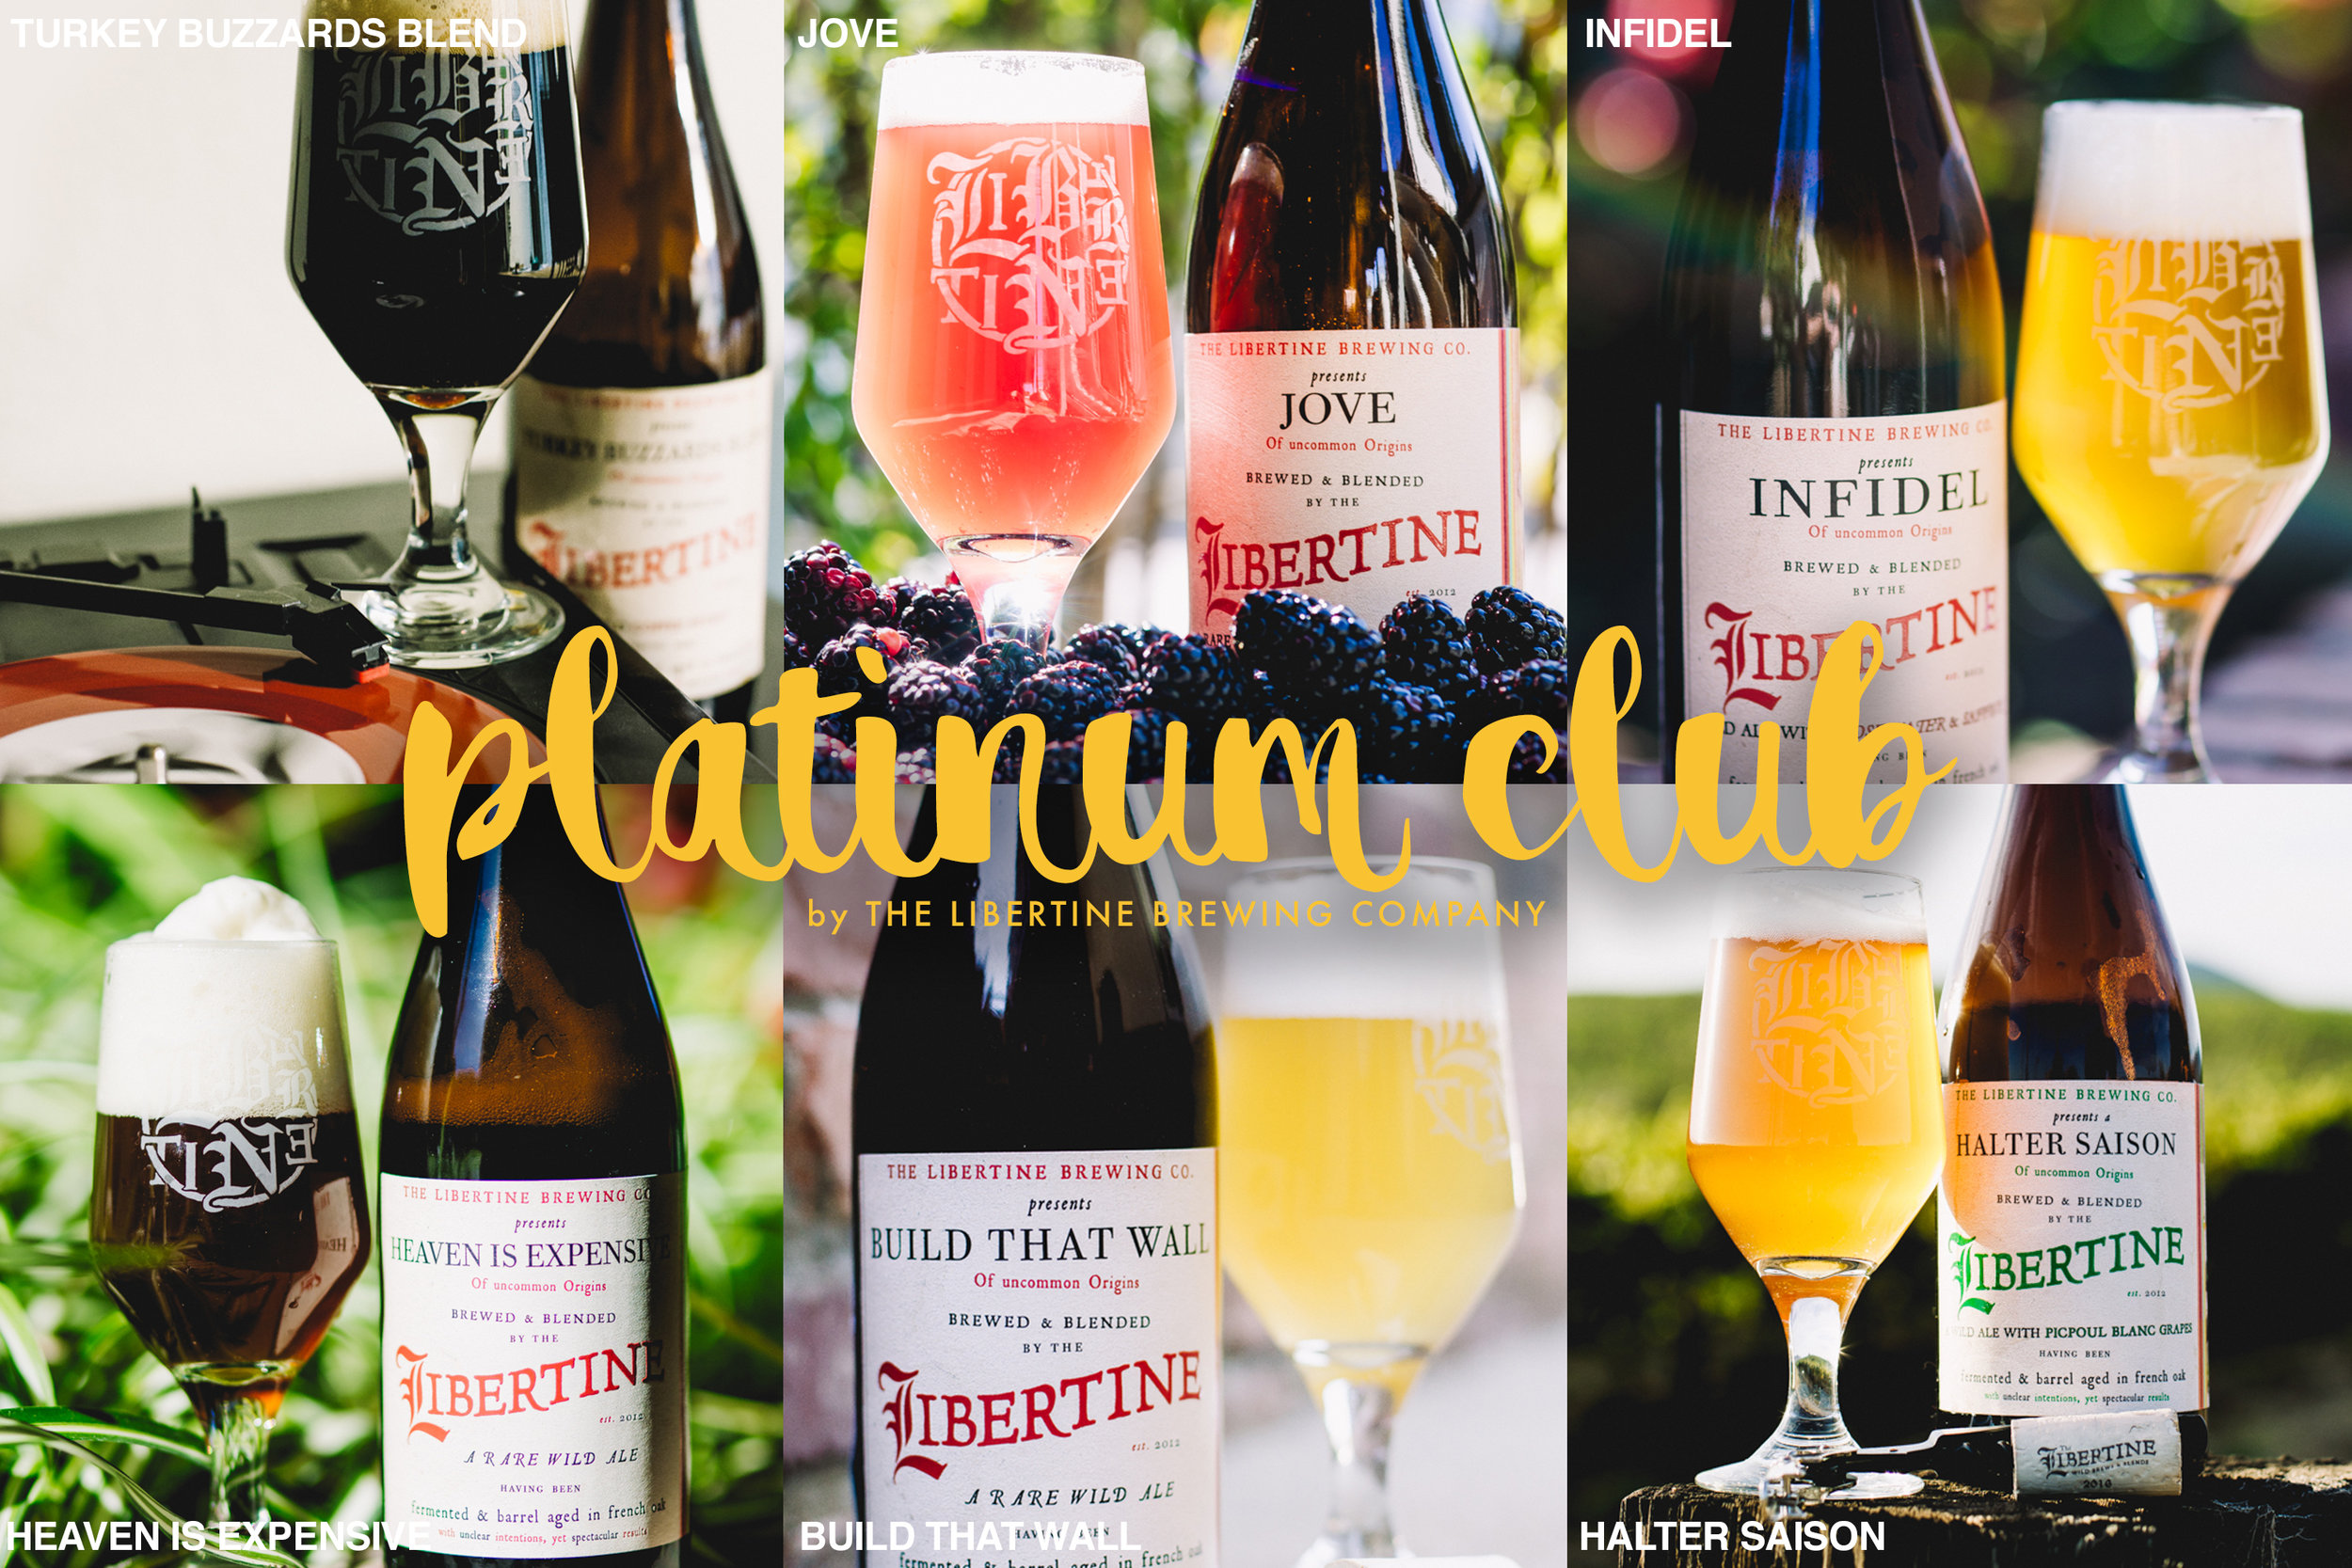 The Platinum Club will feature Turkey Buzzards Blend, Jove, Infidel, Halter Saison, Build That Wall & Heaven Is Expensive in the first shipment on December 1. The Libertine Bottle Club will focus on sending you unique beers every quarter.